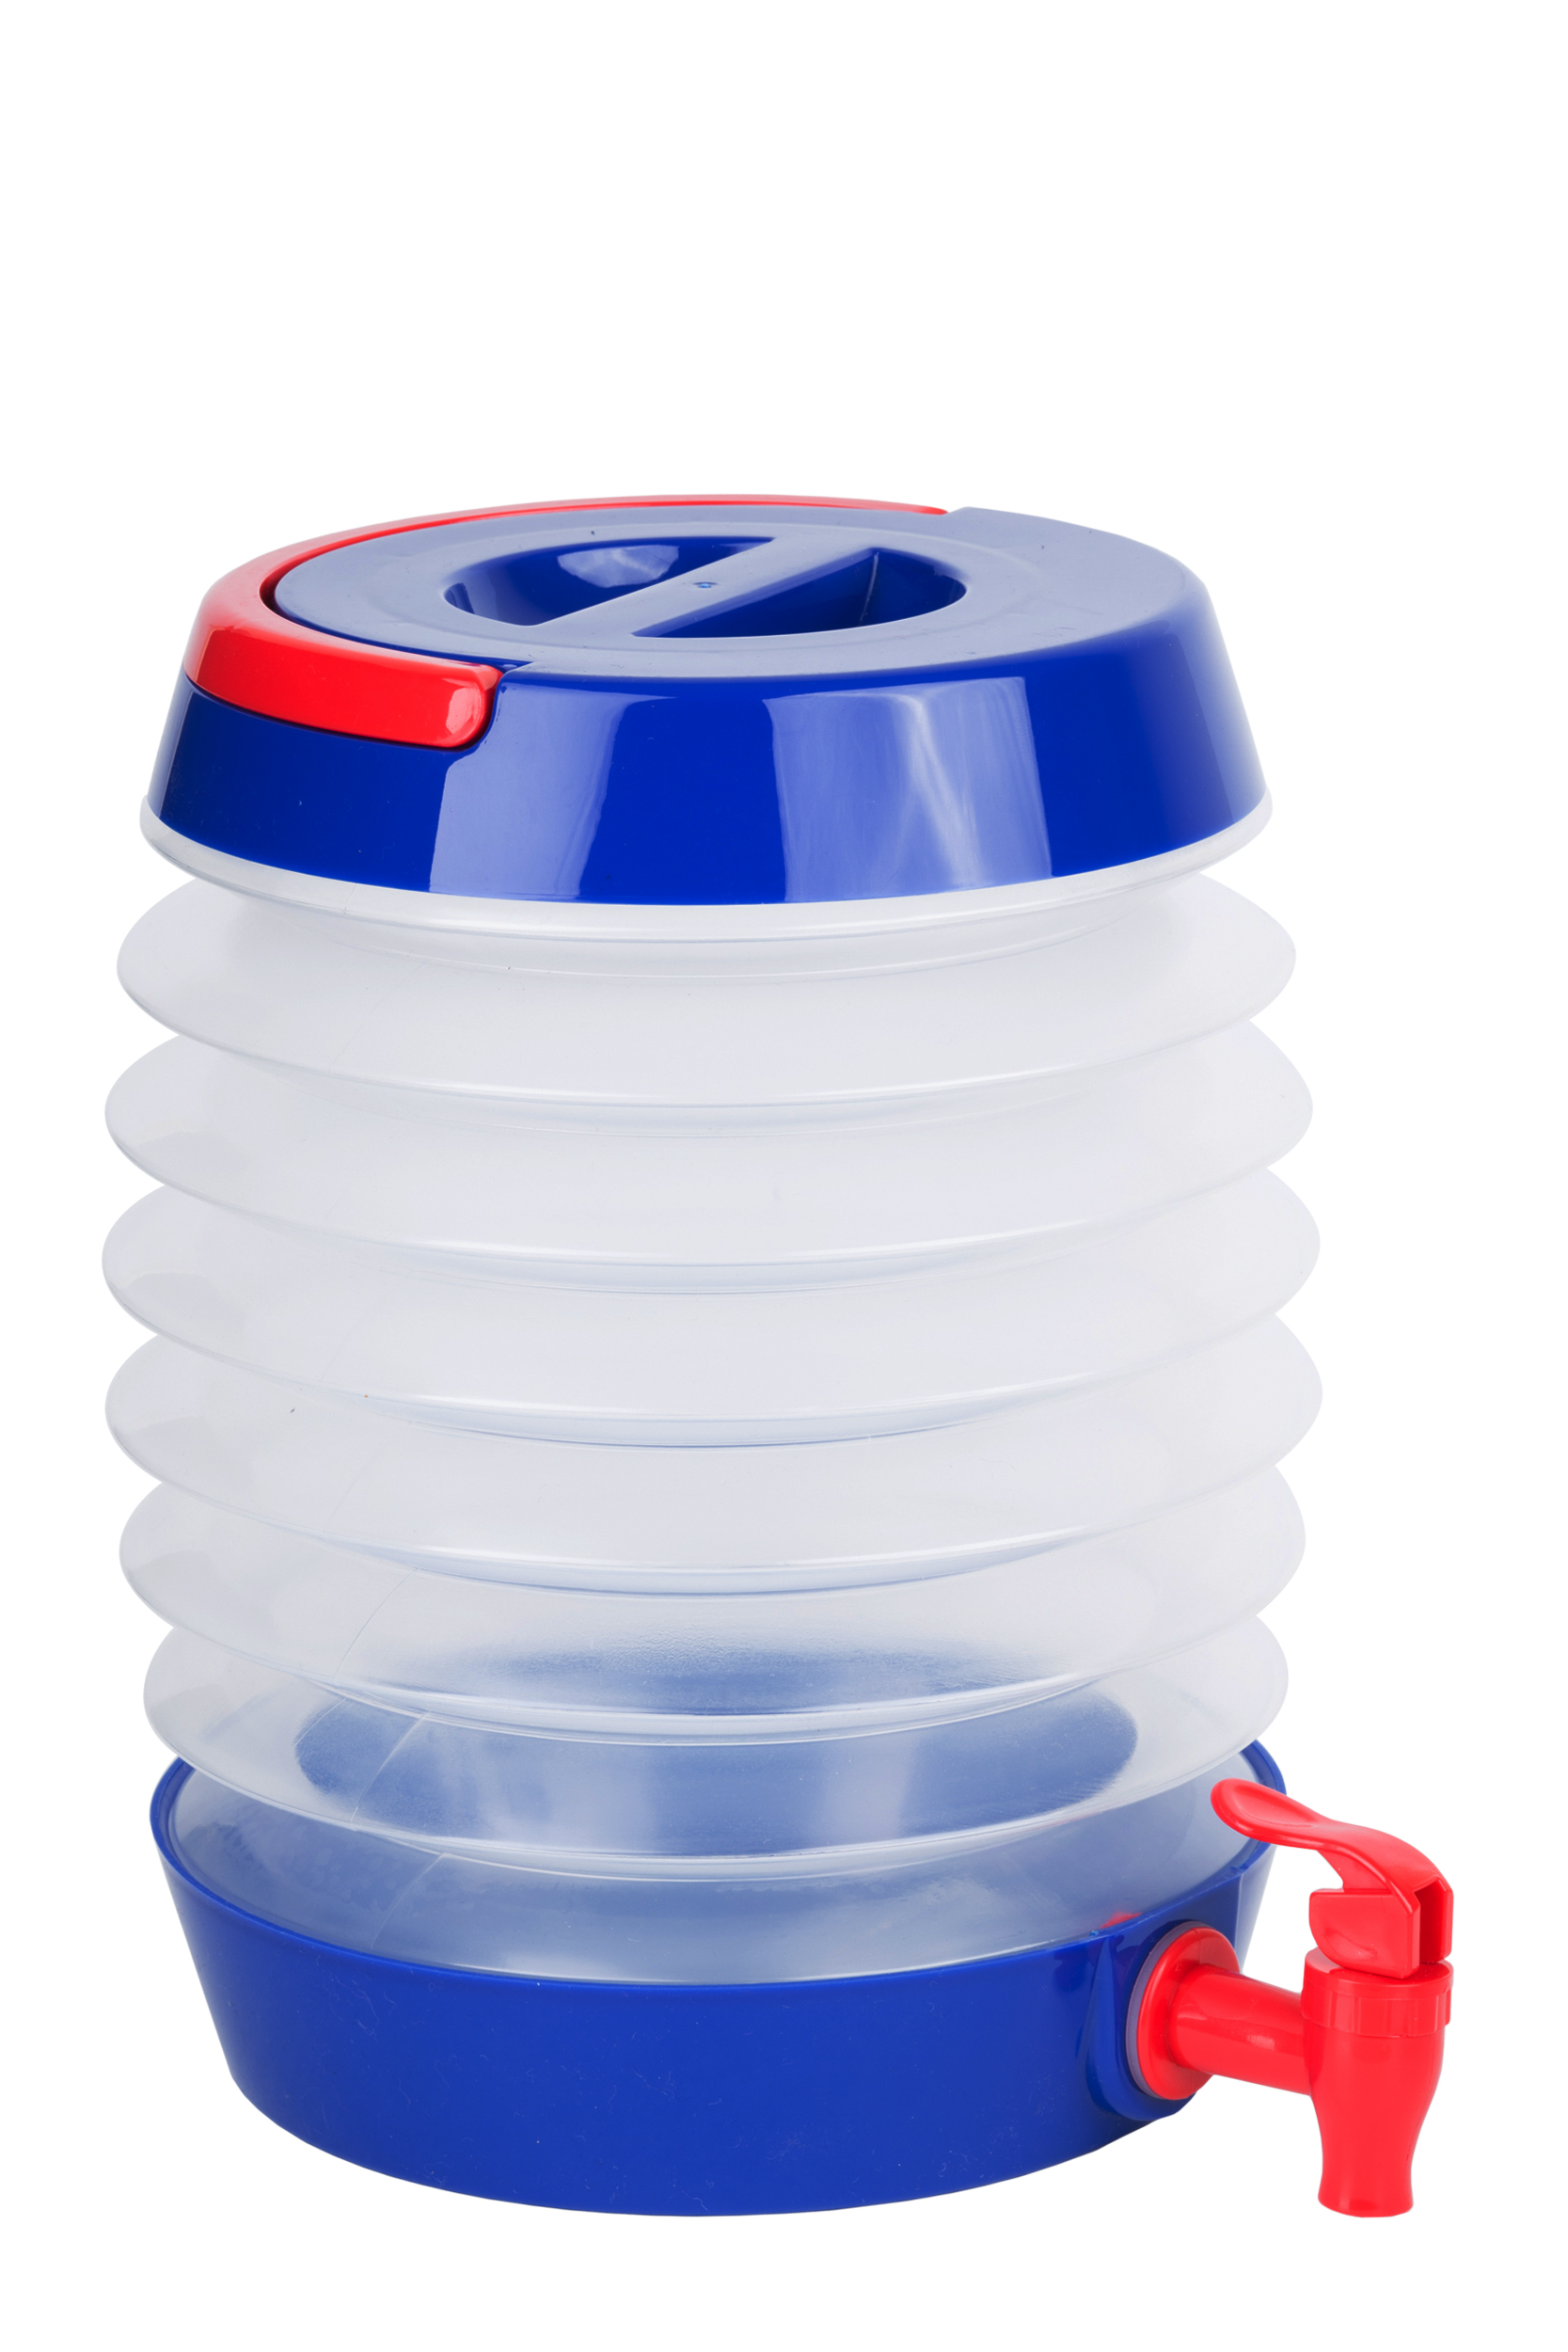 Collapsible Beverage Dispenser Blue/Red